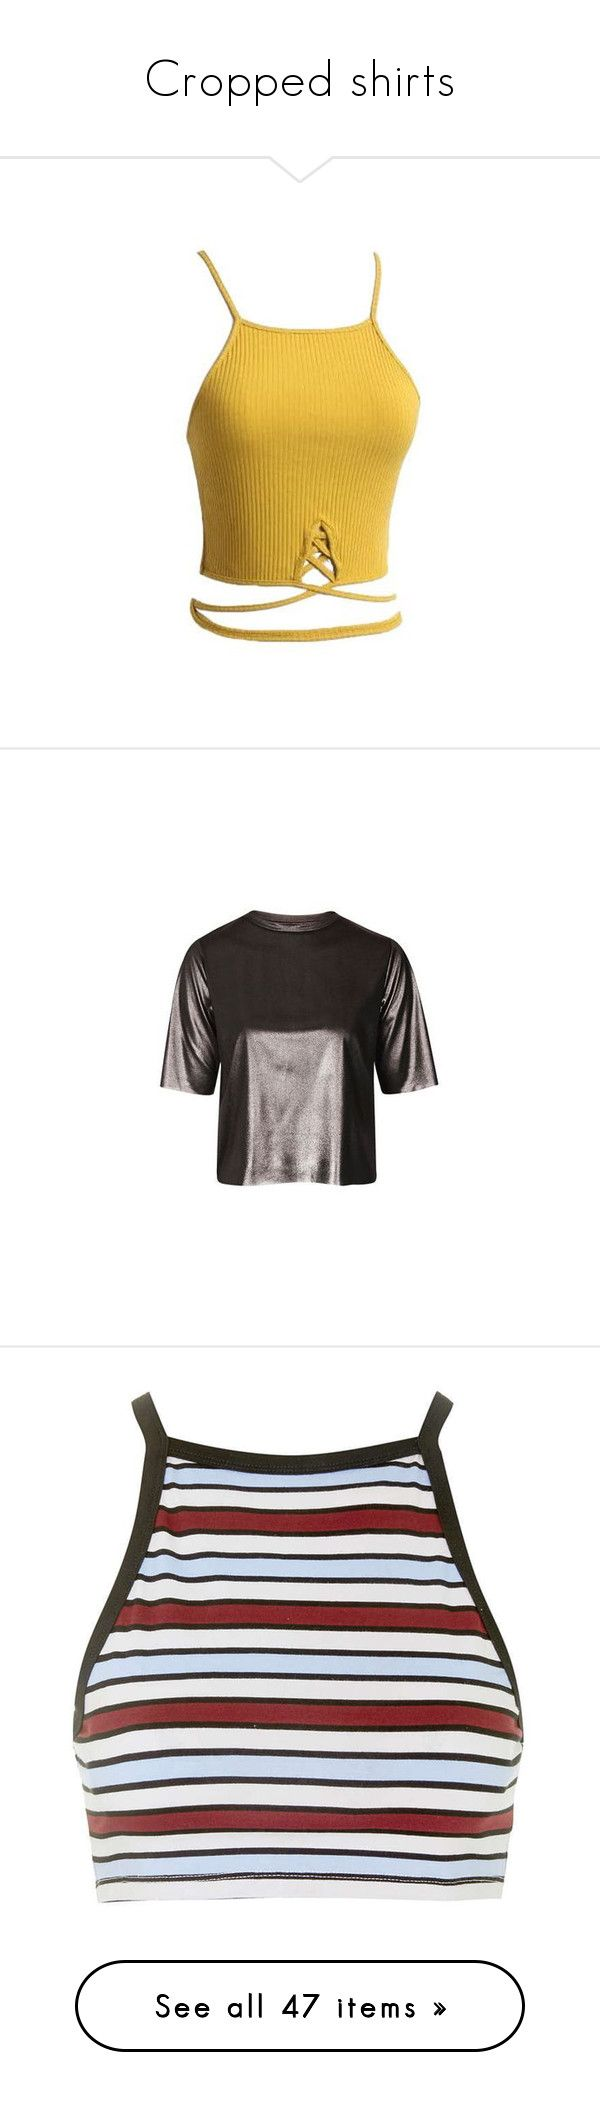 """""""Cropped shirts"""" by seanarice ❤ liked on Polyvore featuring yellow, yellow camisole, criss cross cami, print cami, yellow cami, cropped camis, tops, t-shirts, topshop and silver"""